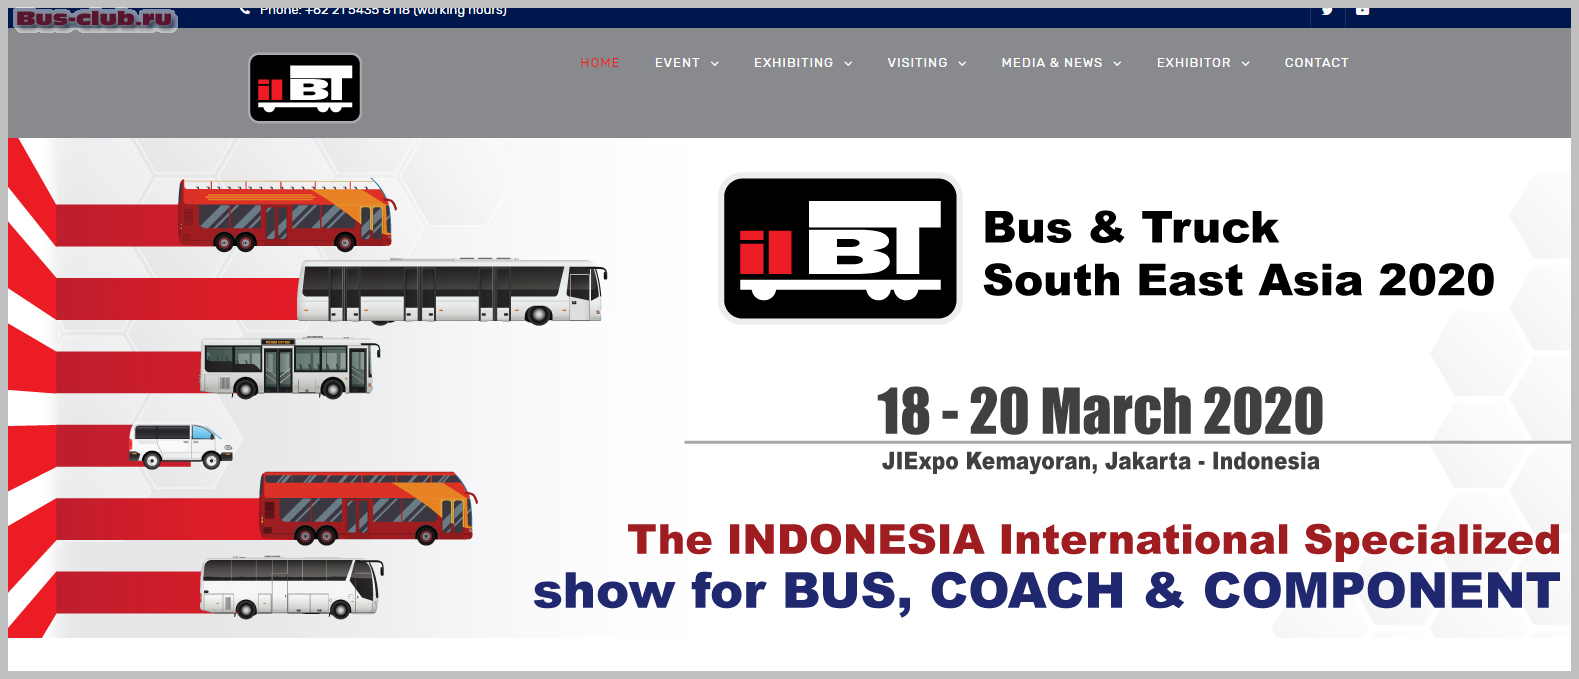 Bus&Truck South East Asia 2020